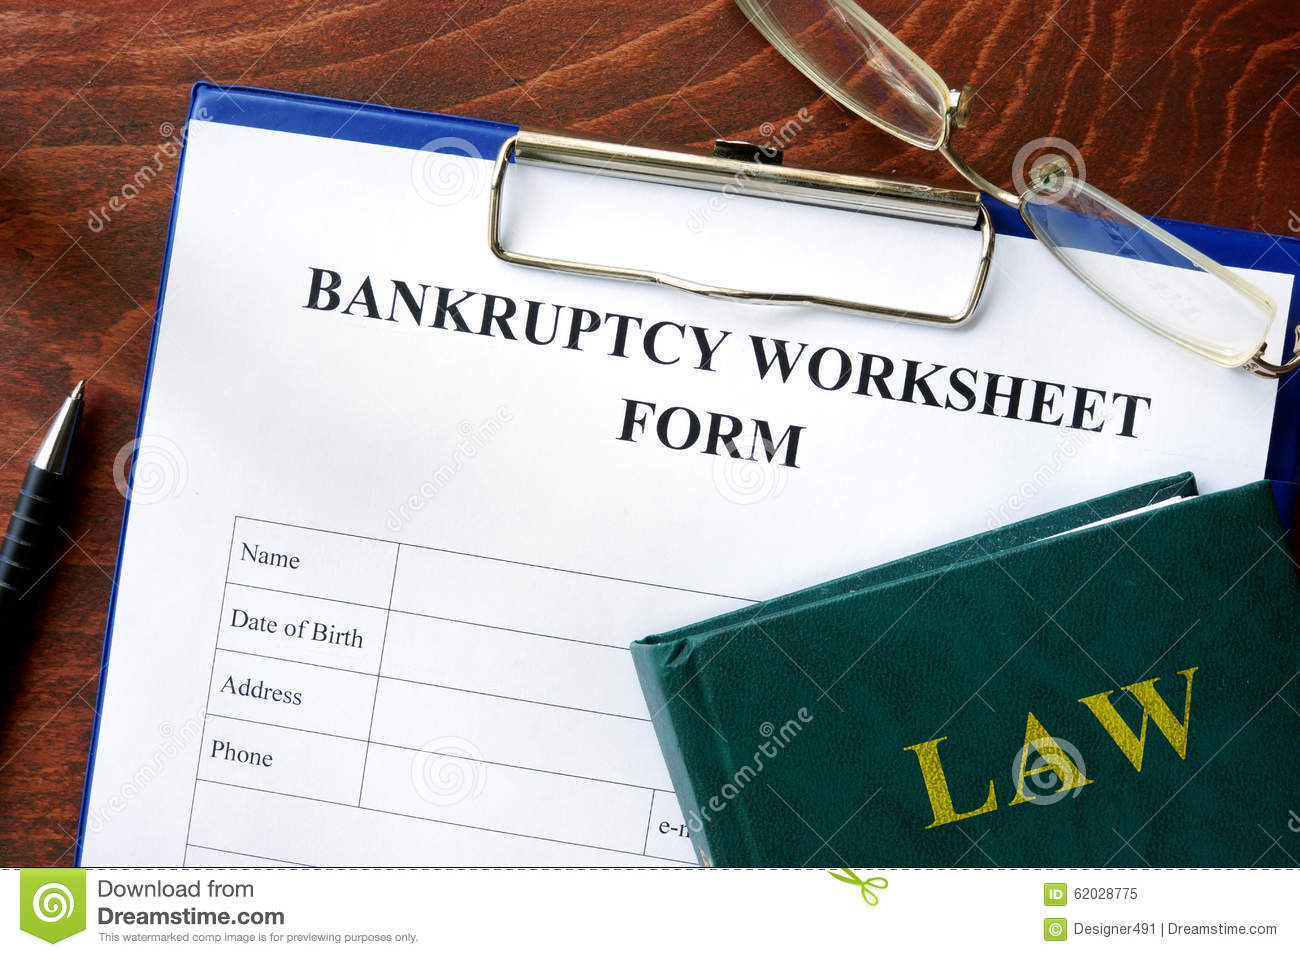 Worksheet Bankruptcy Worksheet bankruptcy worksheet form stock photo image 62028775 form